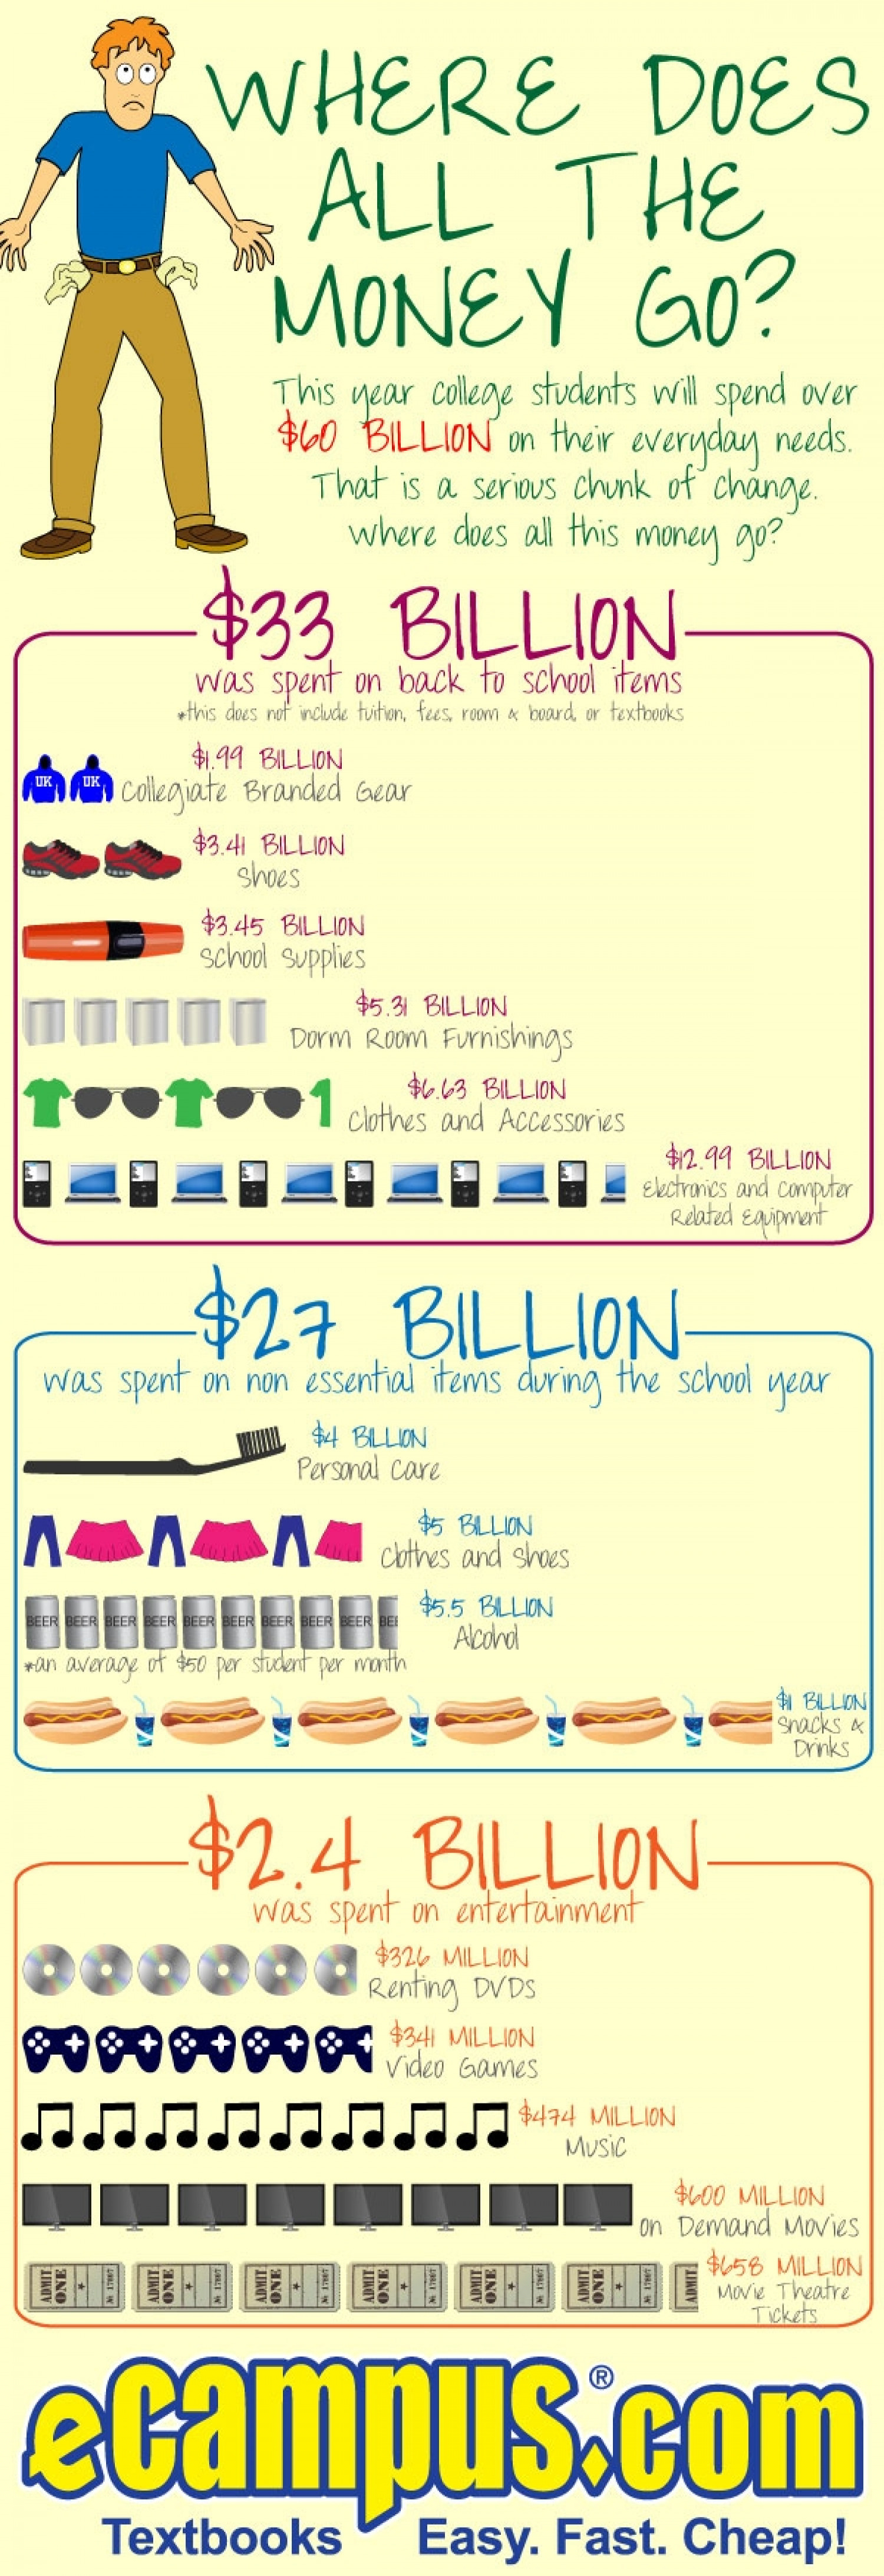 Where Does All the Money Go? Infographic